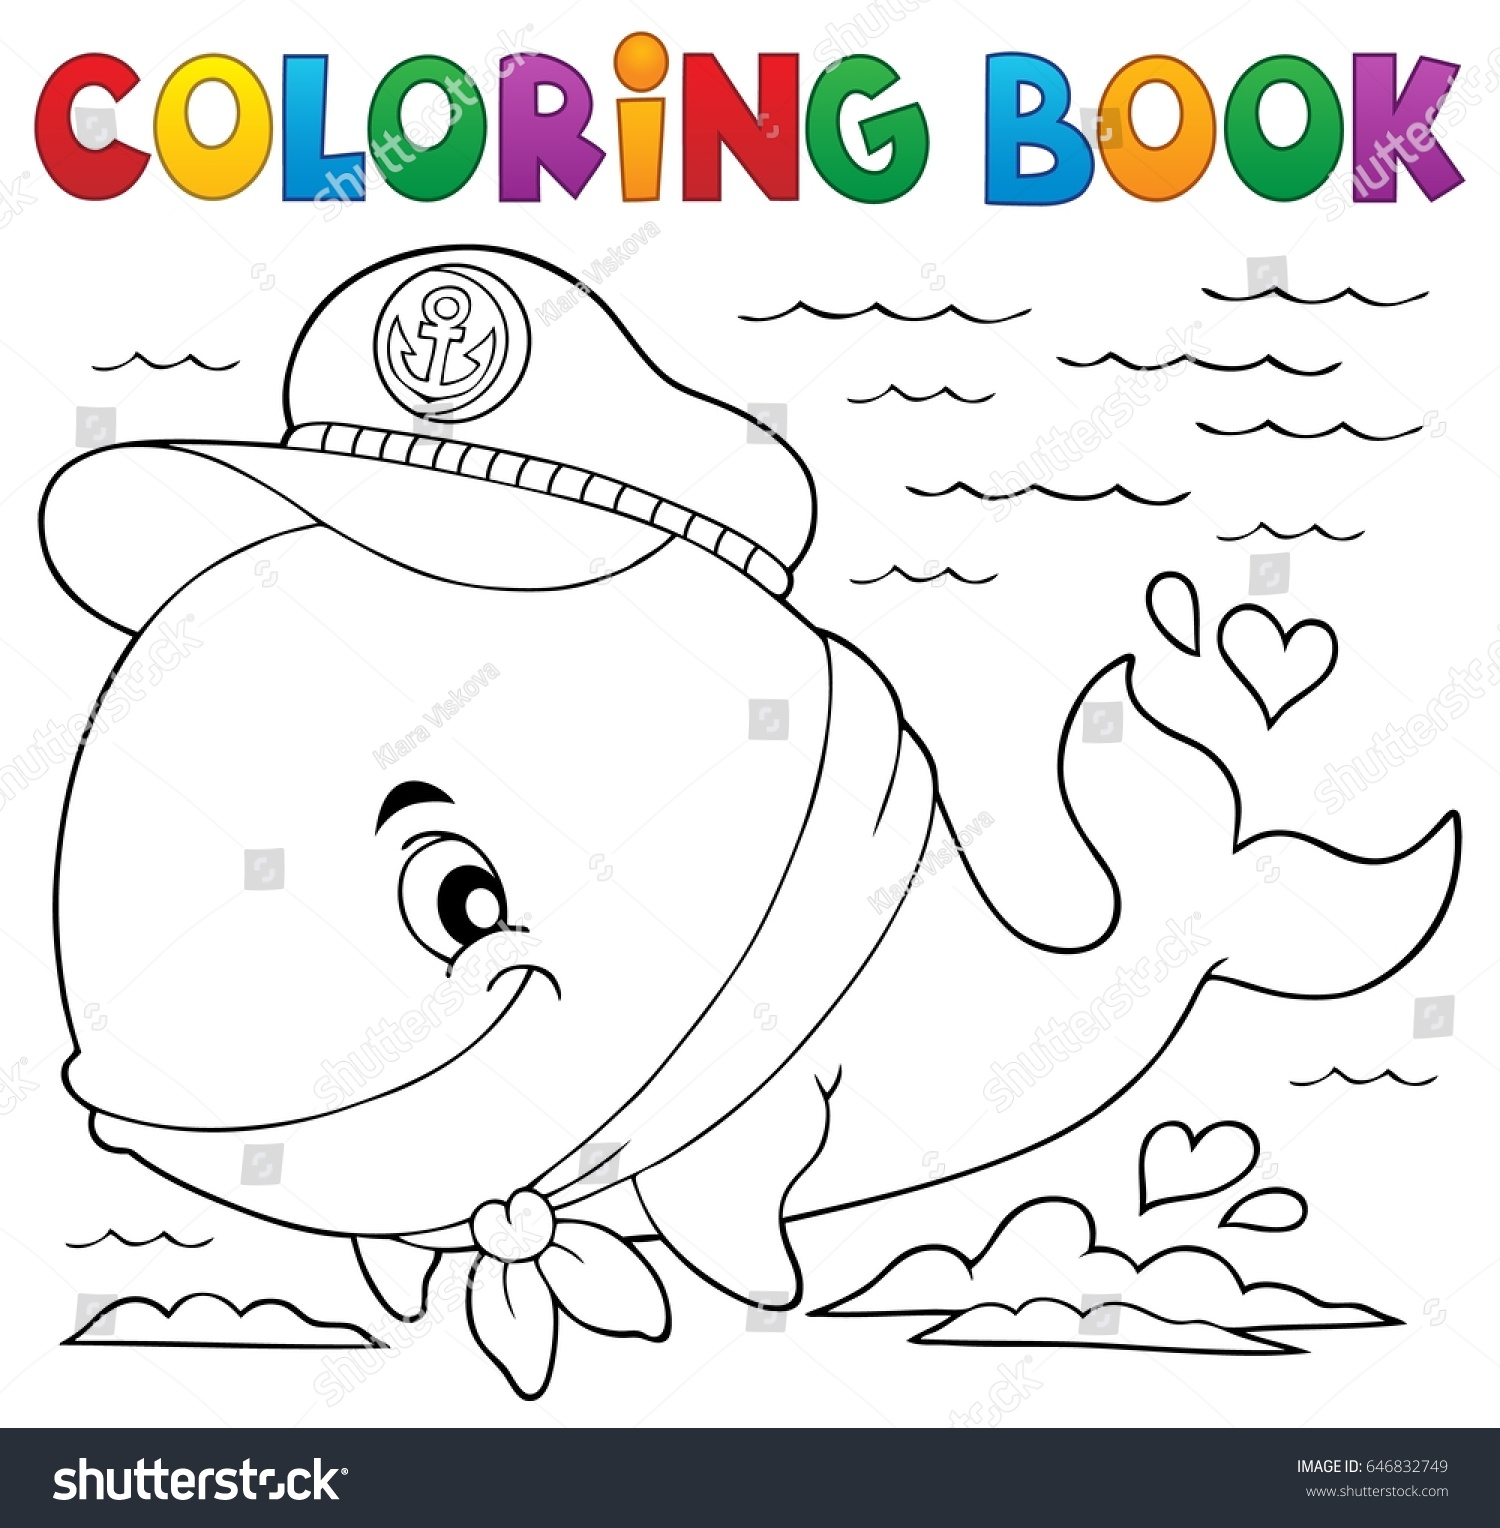 Coloring book whale - Coloring Book Sailor Whale Theme 1 Eps10 Vector Illustration